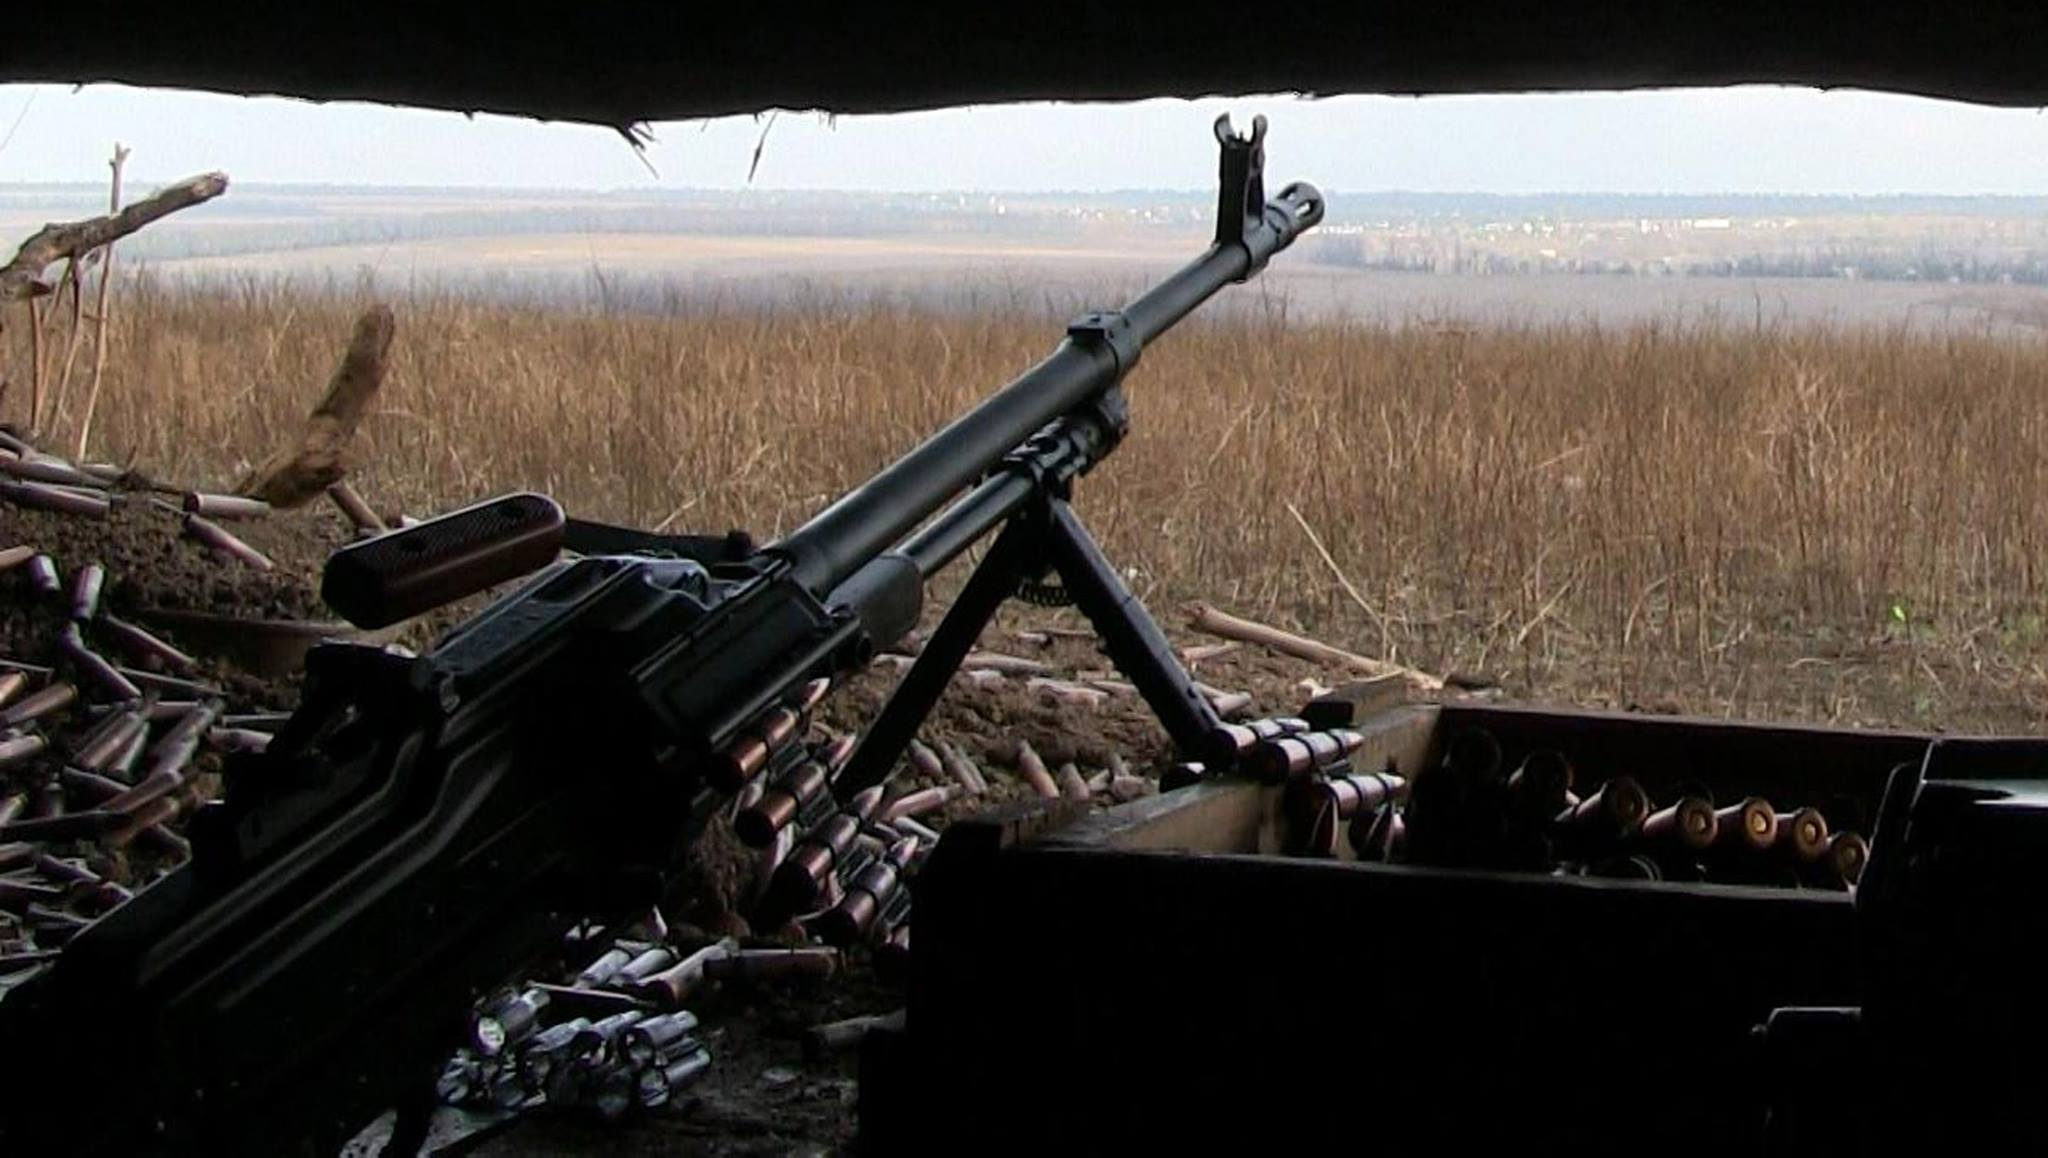 the war in the Donbass